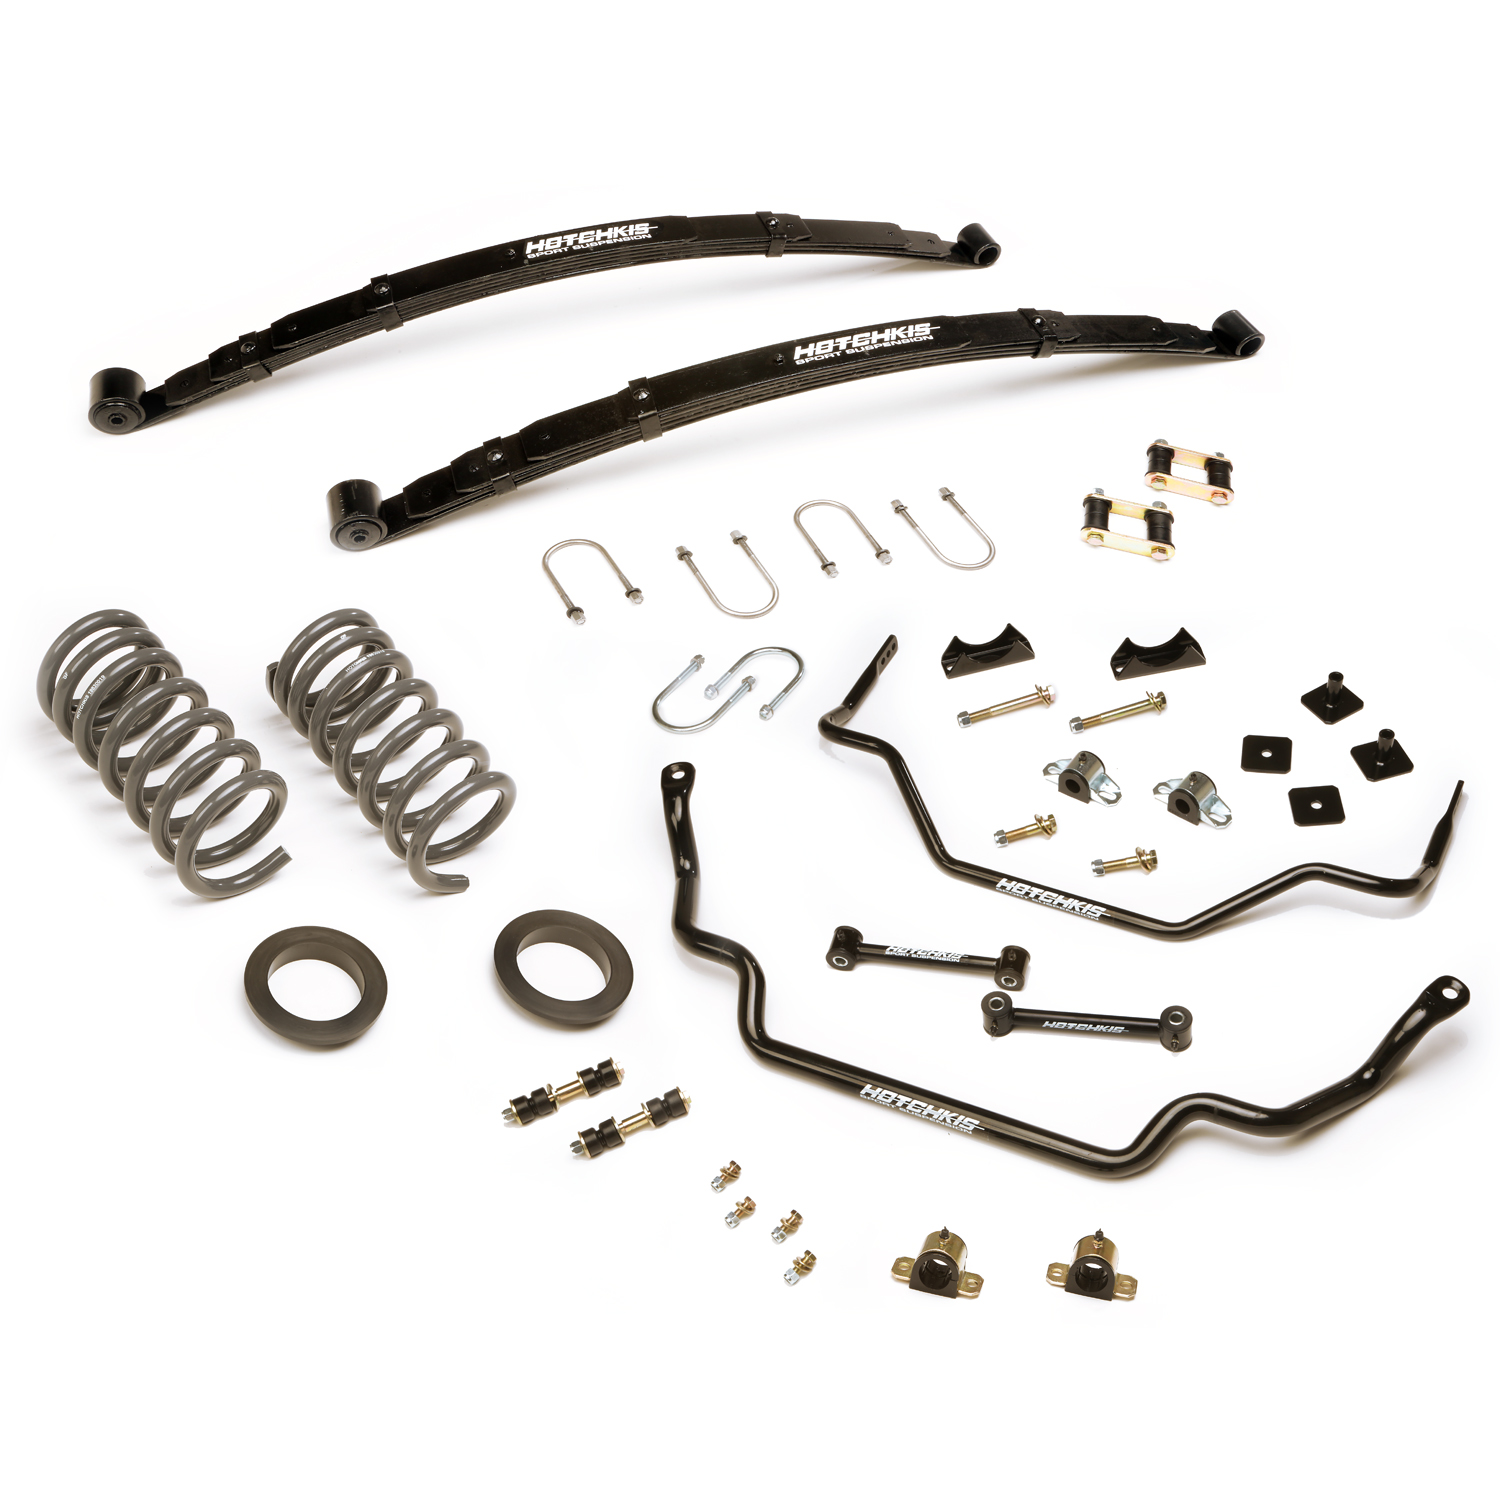 1964-1966 Ford Mustang TVS Suspension System, Coupe, Fastback, Convertible SB